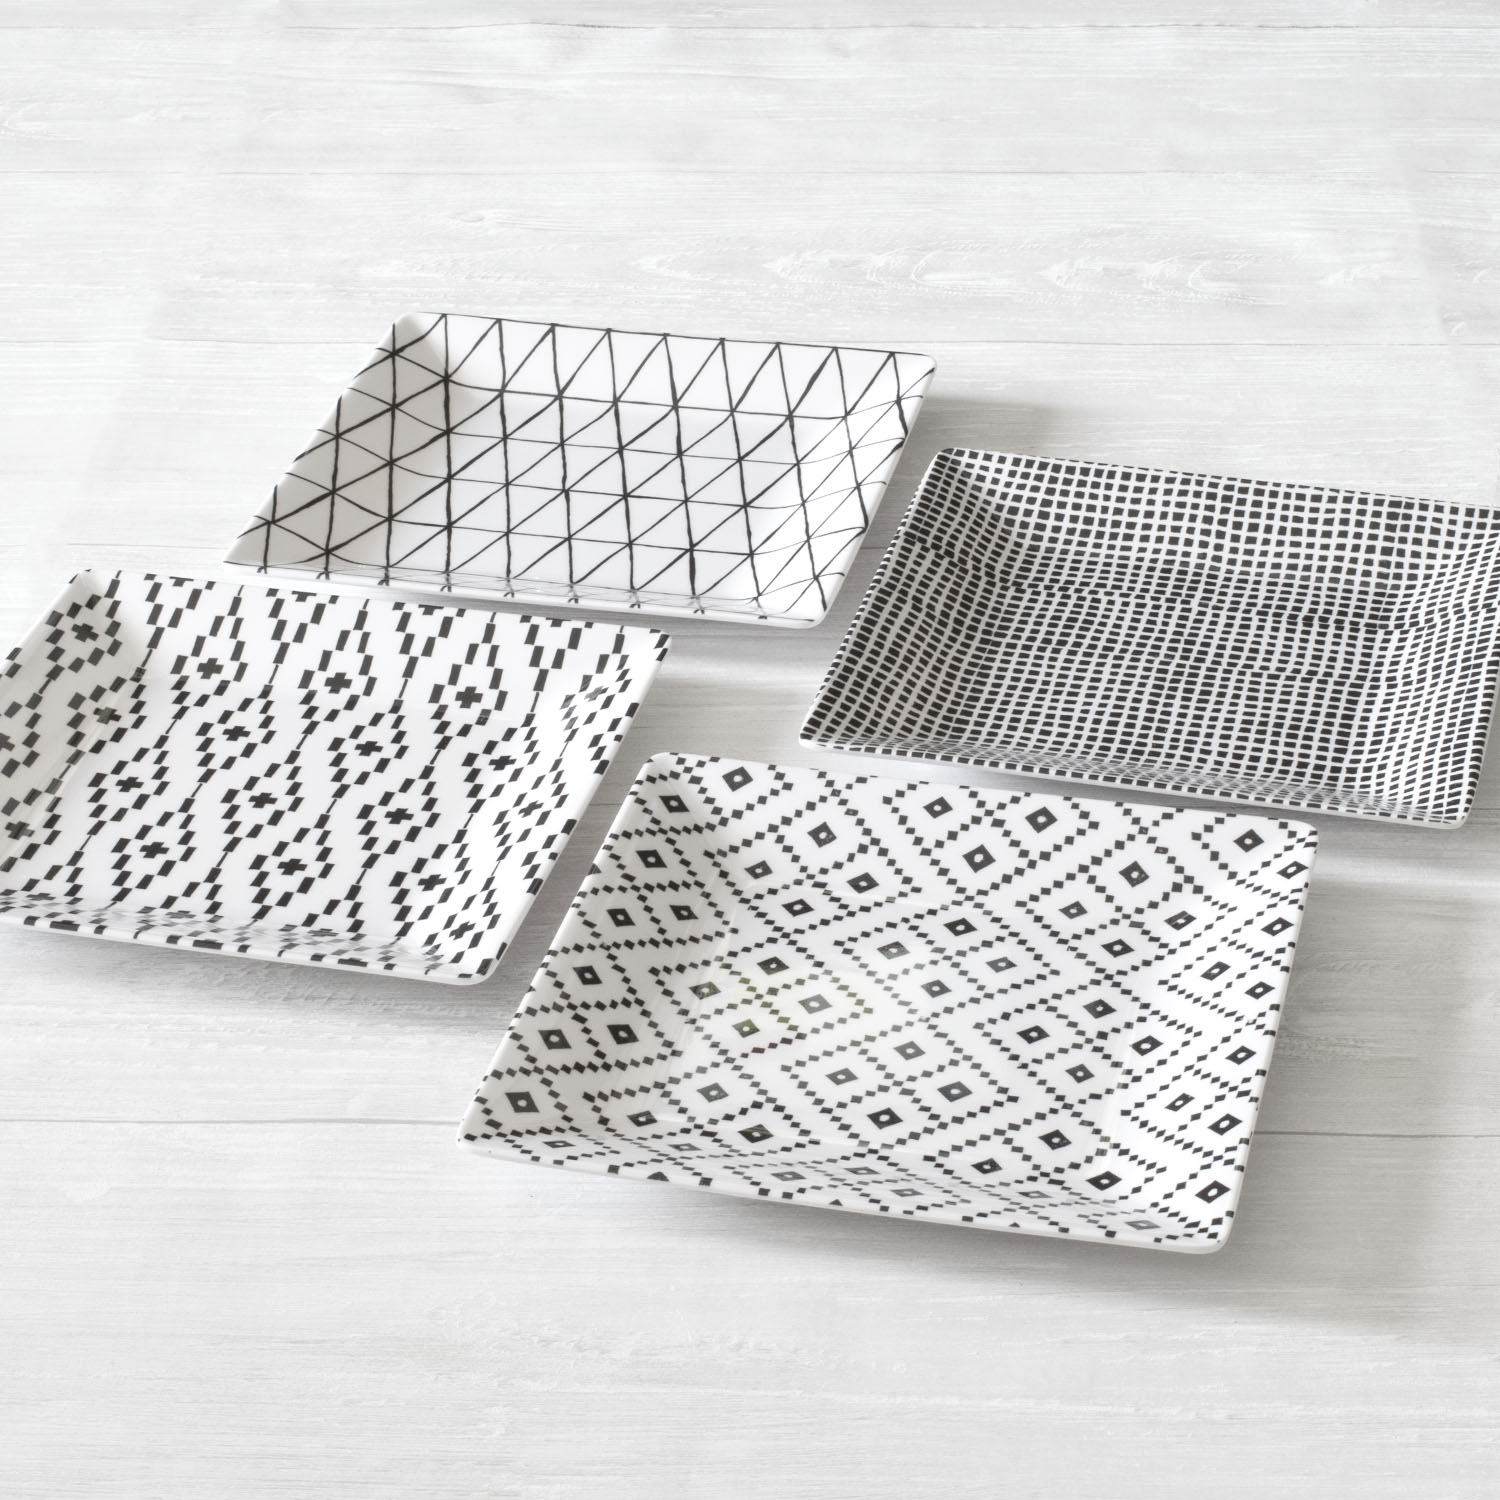 Better Homes & Gardens Neutralis 4 Pack Assorted Melamine Salad Plates